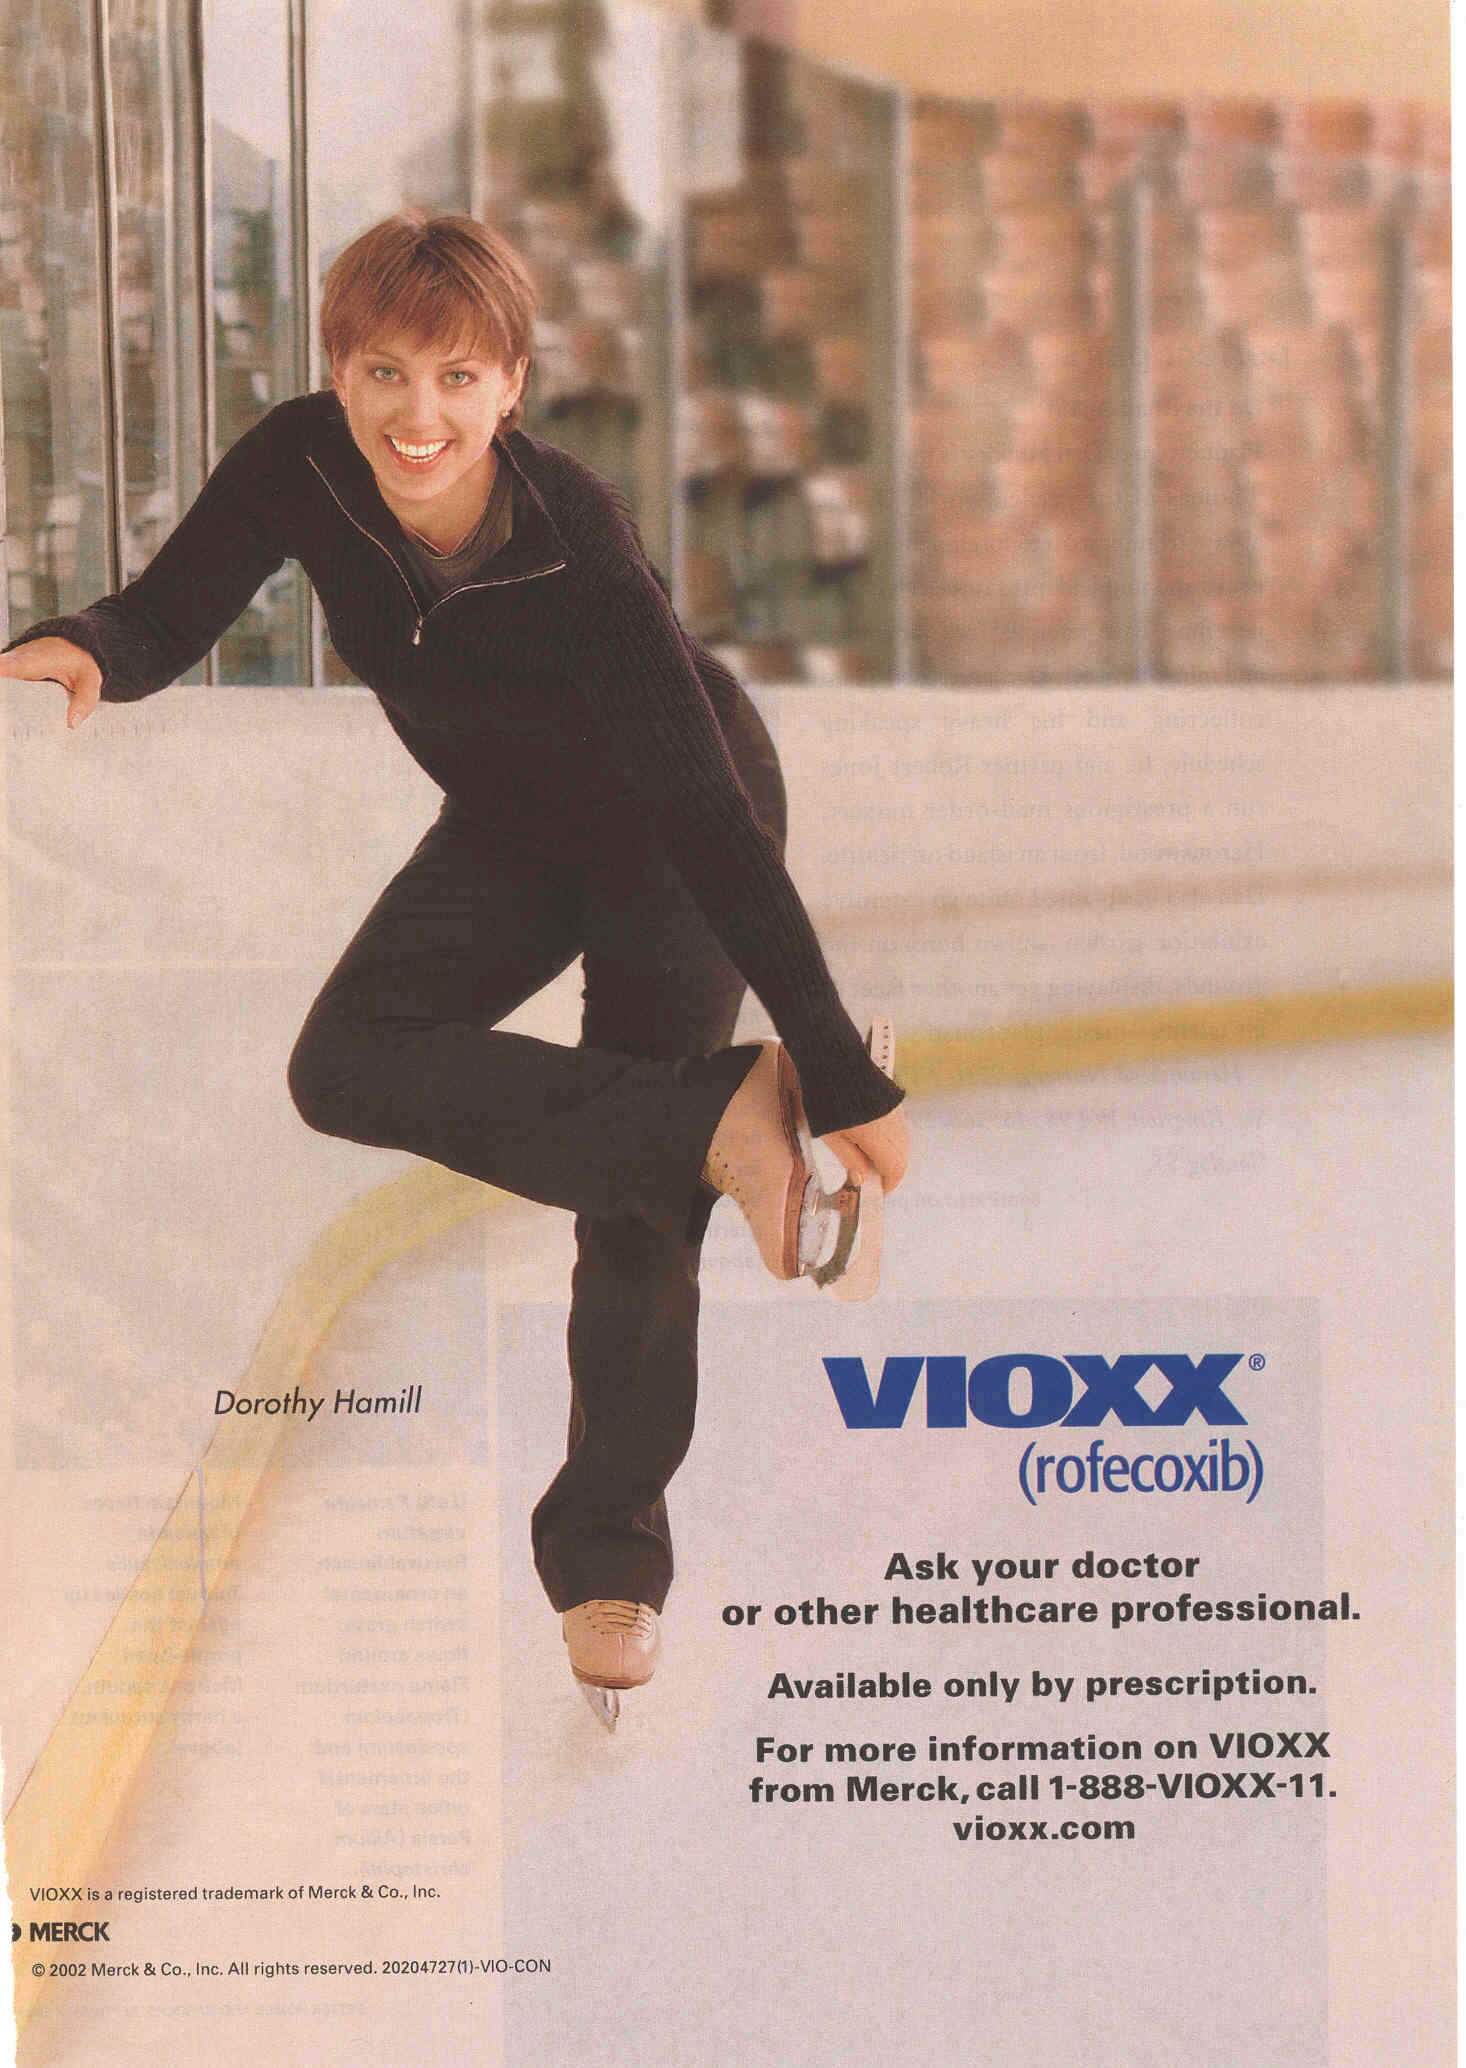 vioxx prescription drug ad